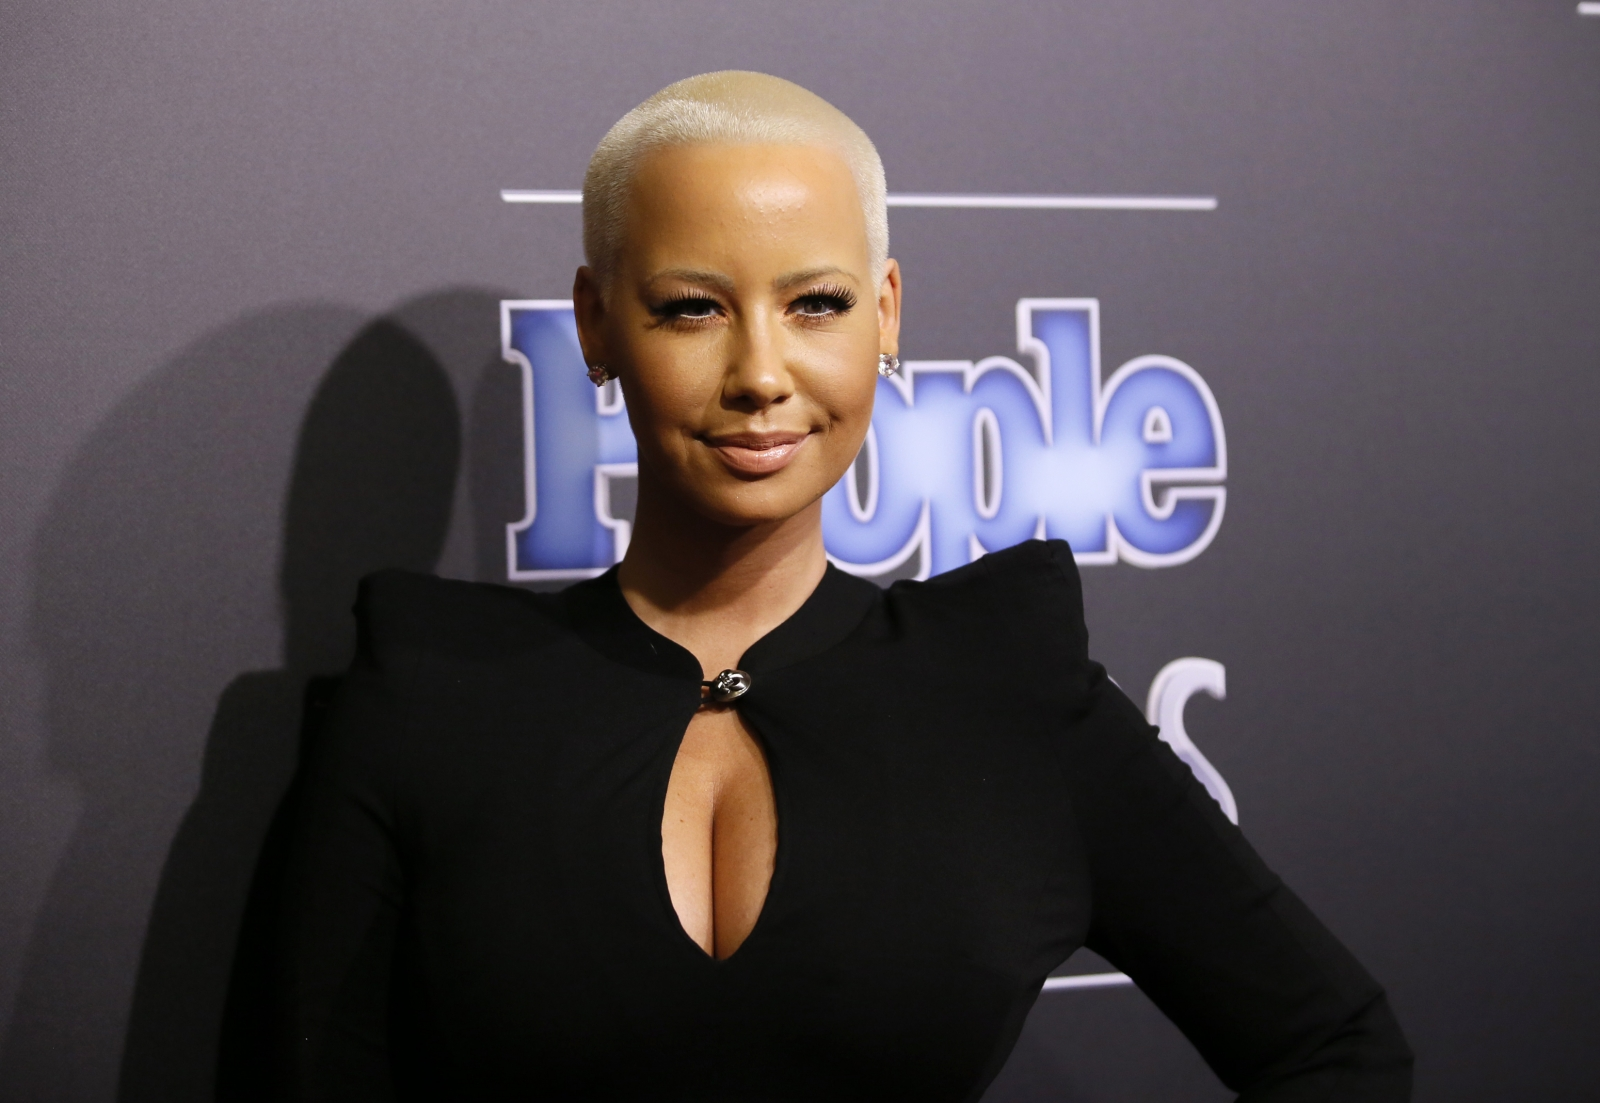 Amber Rose's home broken into and intruder stays for hours while she sleeps